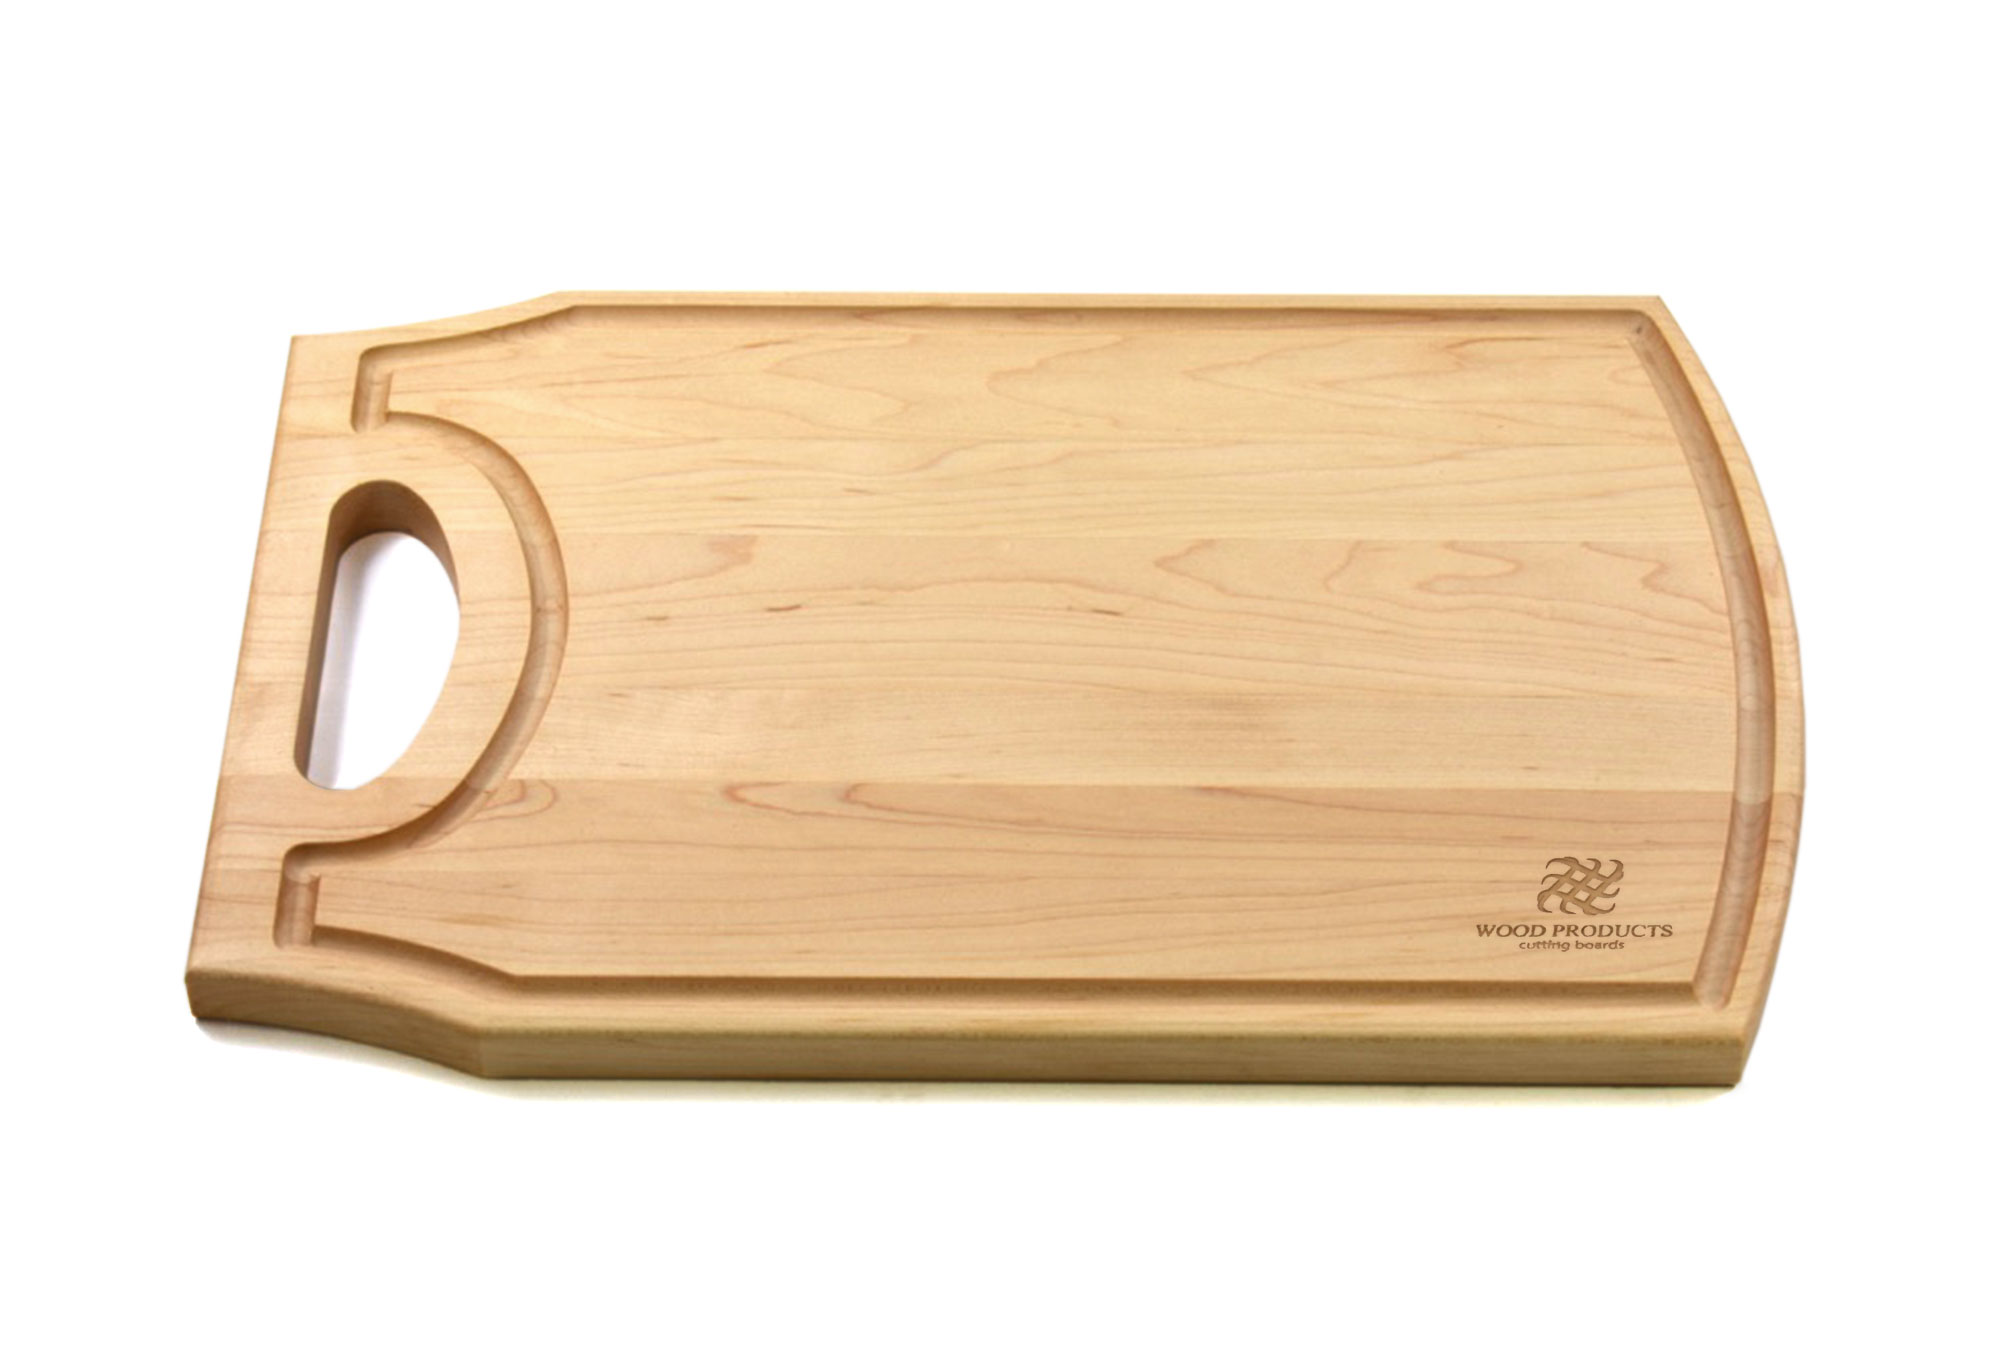 Large wooden cutting board with handle Engraved